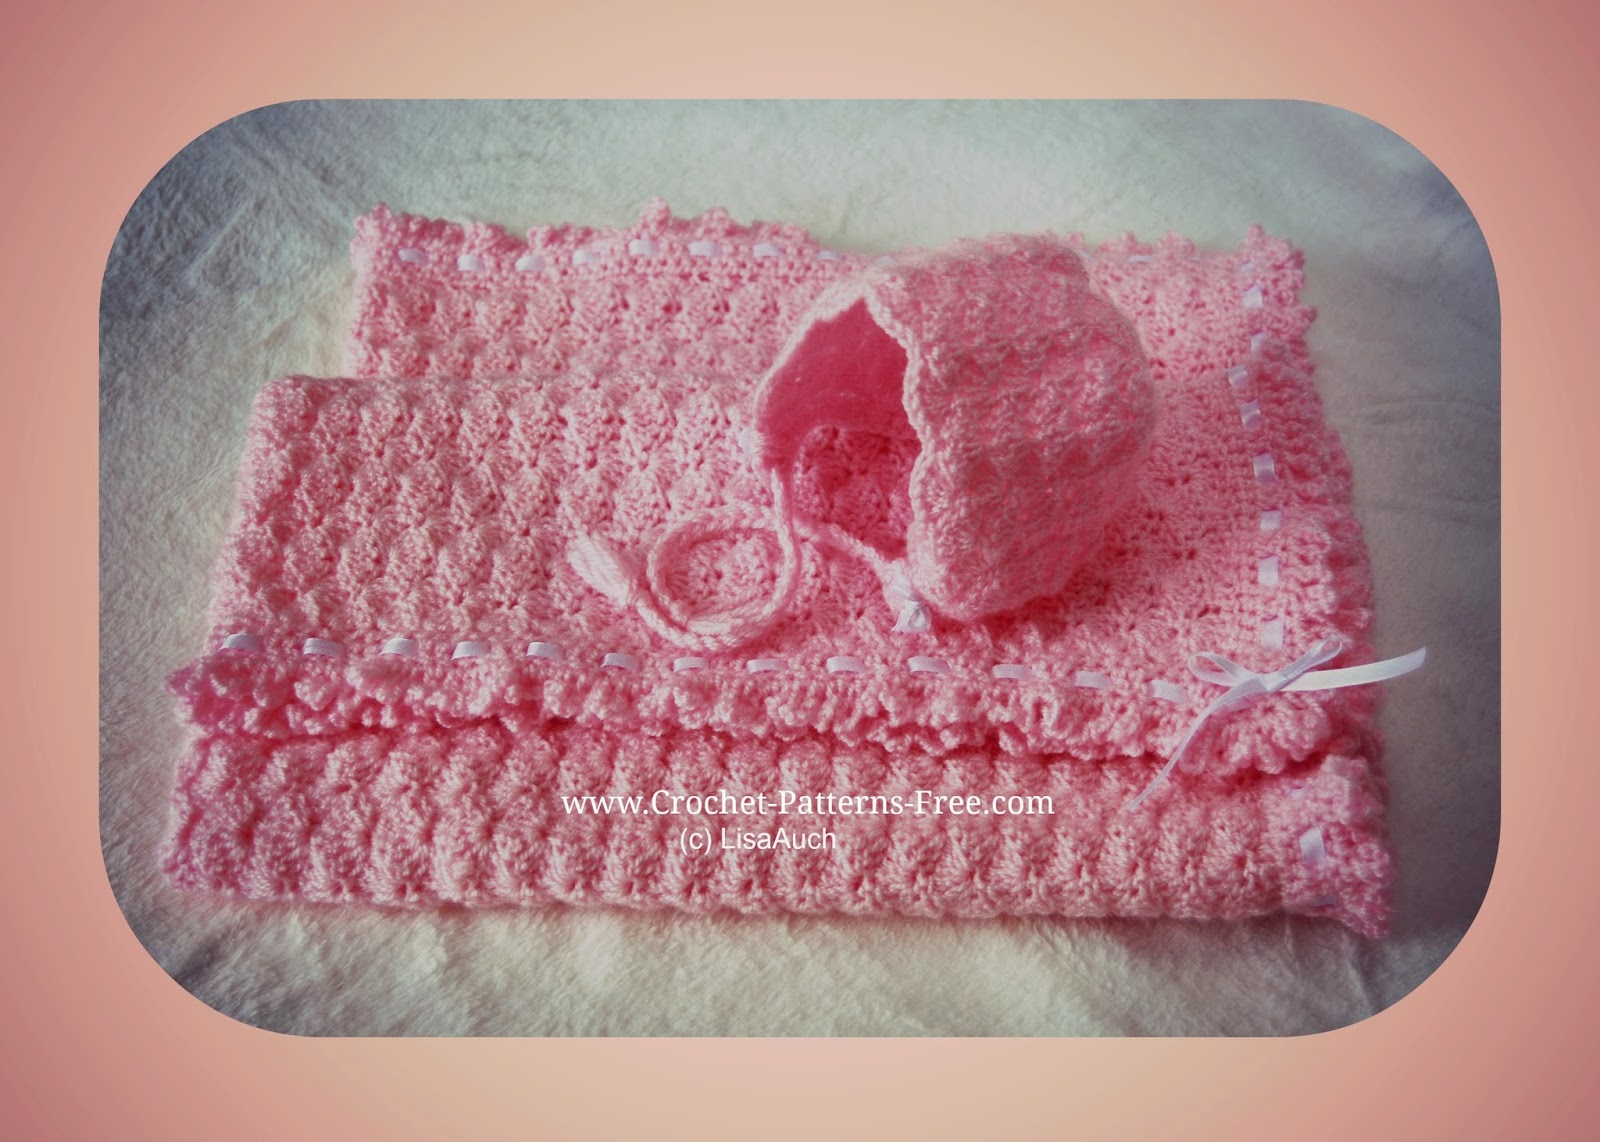 15 free crochet patterns for baby blankets baby afghan crochet see my free tutorial and how to crochet any size of cosy baby blanket here baditri Image collections